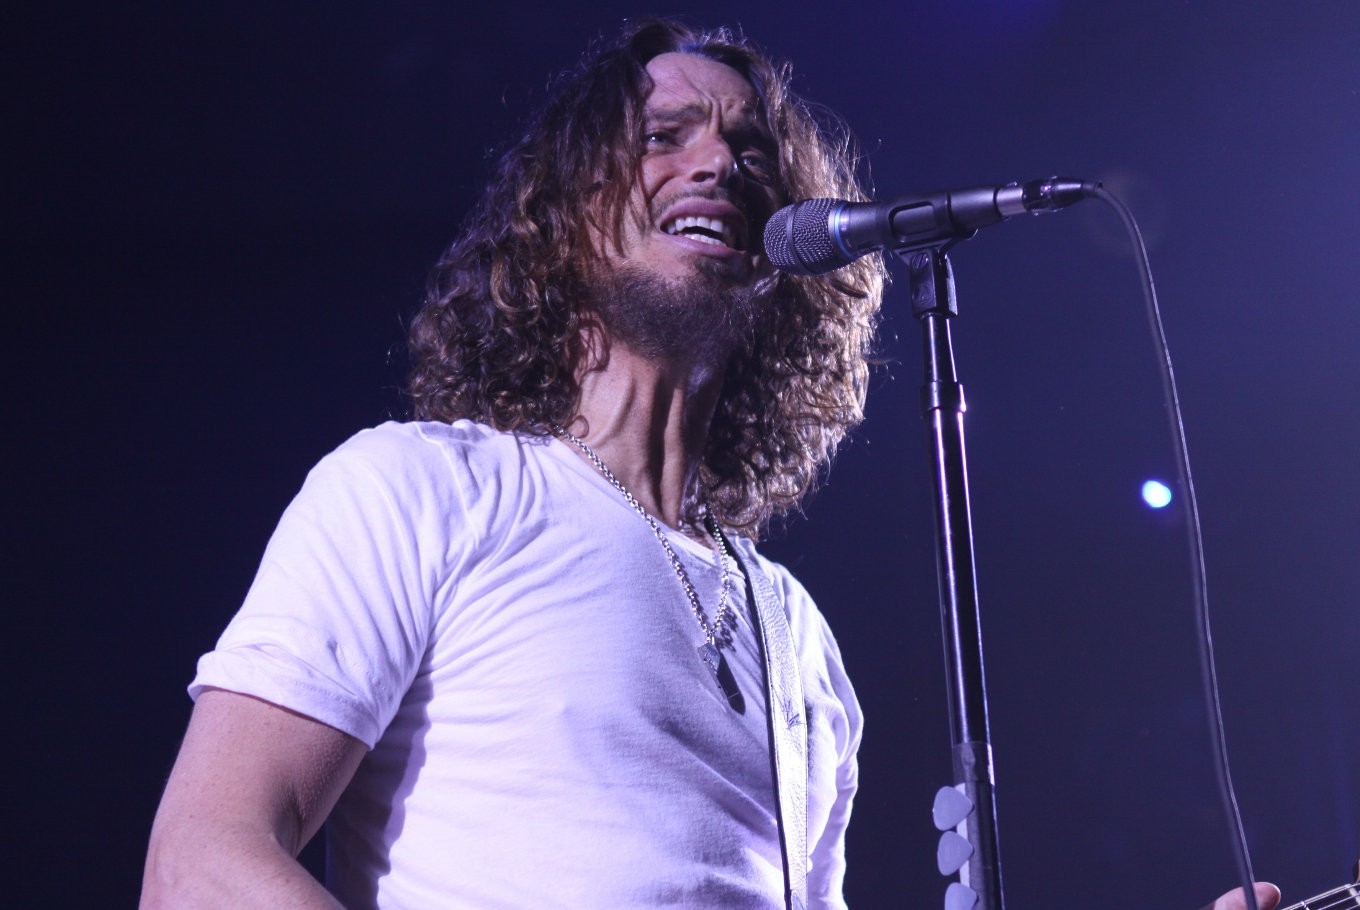 Album Review: 'Chris Cornell' by Chris Cornell